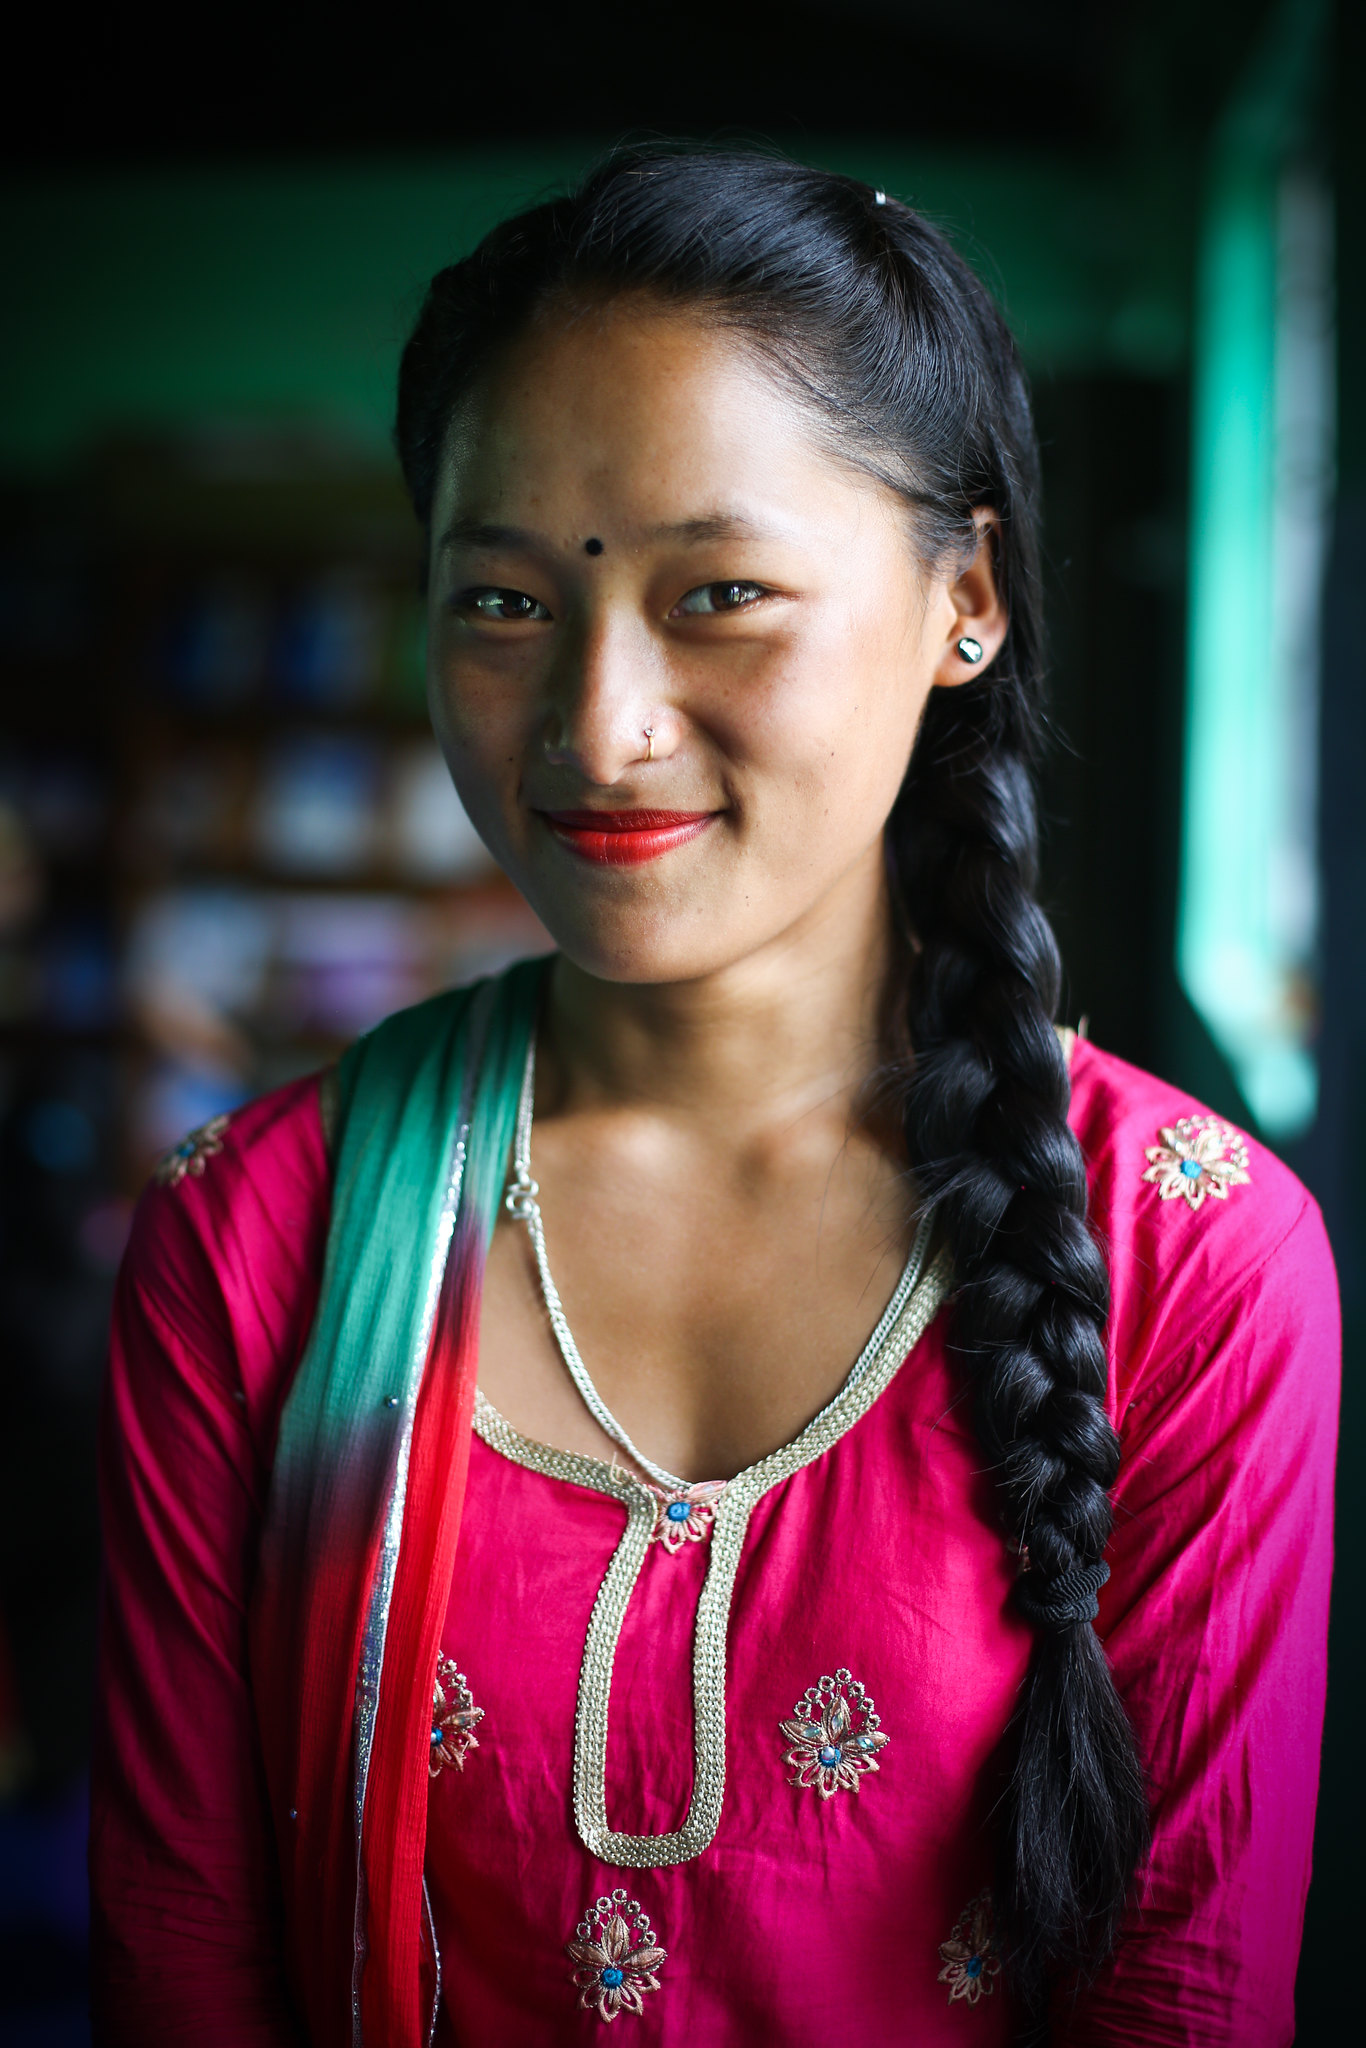 Shweta Gulati – Visual Storytelling Fellow Nepal